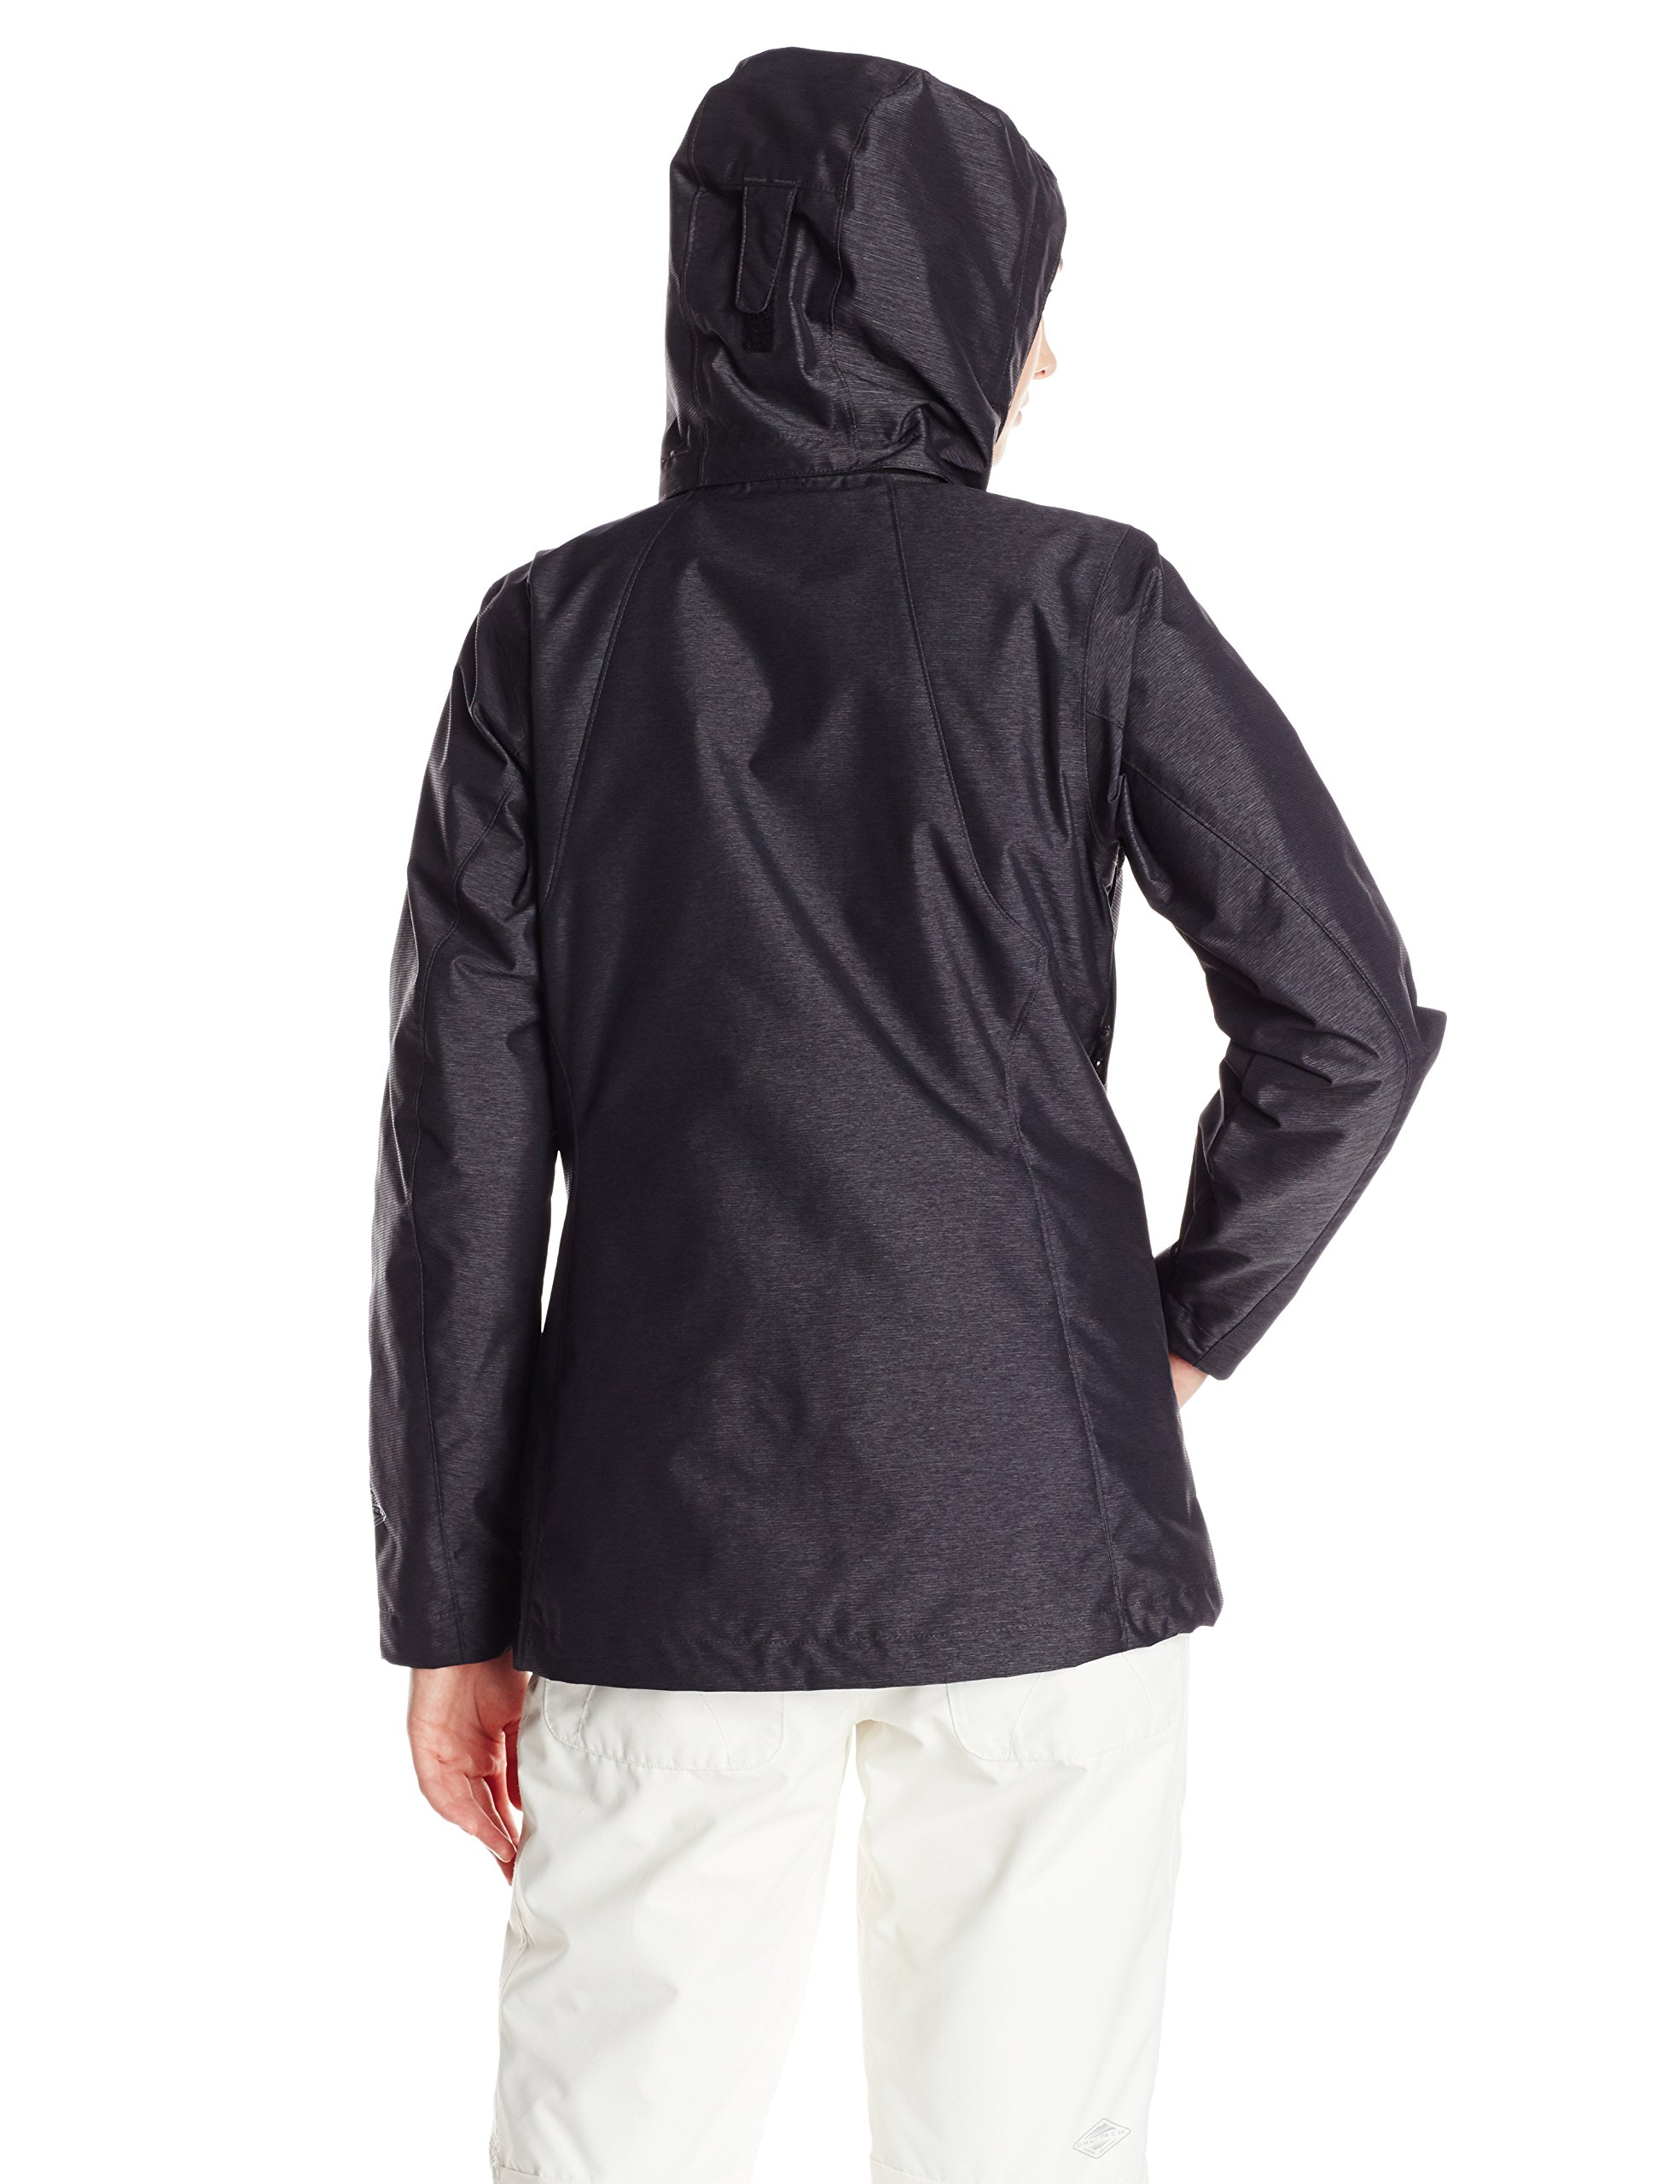 Columbia Women's Whirlibird Interchange Jacket, Black Cross Dye, Medium by Columbia (Image #3)